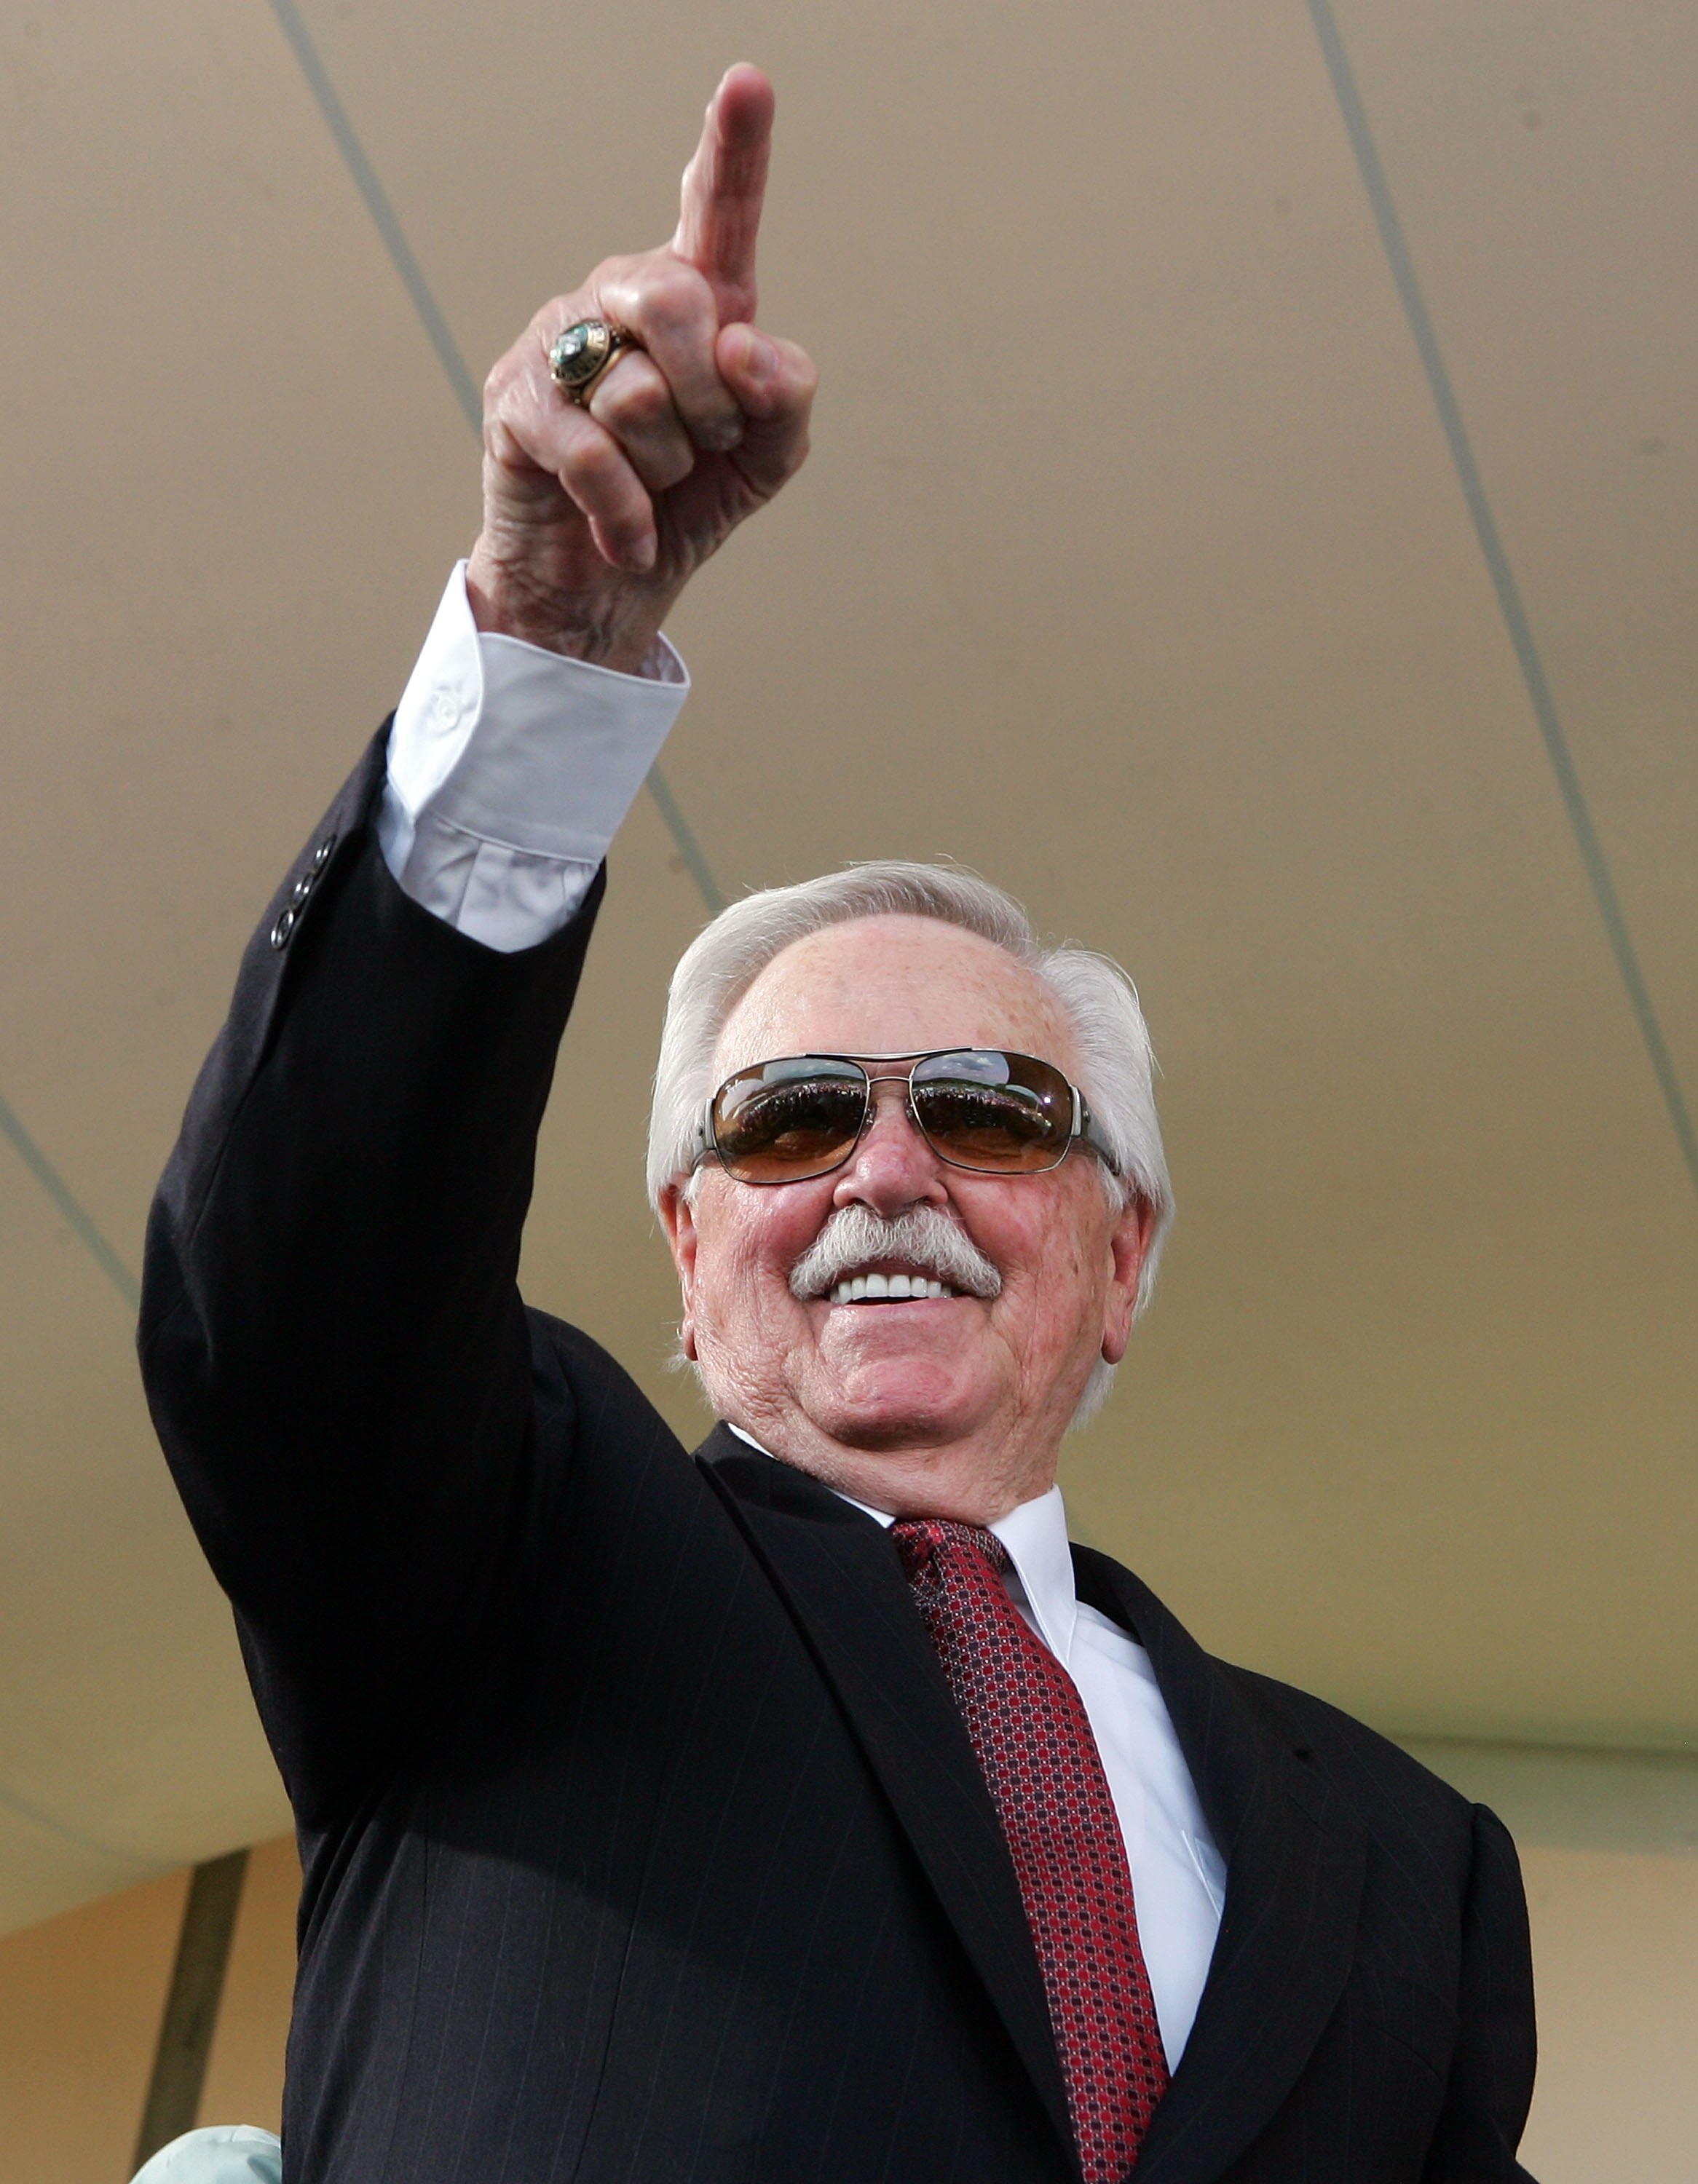 COOPERSTOWN, NY - JULY 27:  Hall of Famer Dick Williams waves to the crowd after his induction into the Baseball Hall of Fame at Clark Sports Center on July 27, 2008 in Cooperstown, New York.  (Photo by Jim McIsaac/Getty Images)